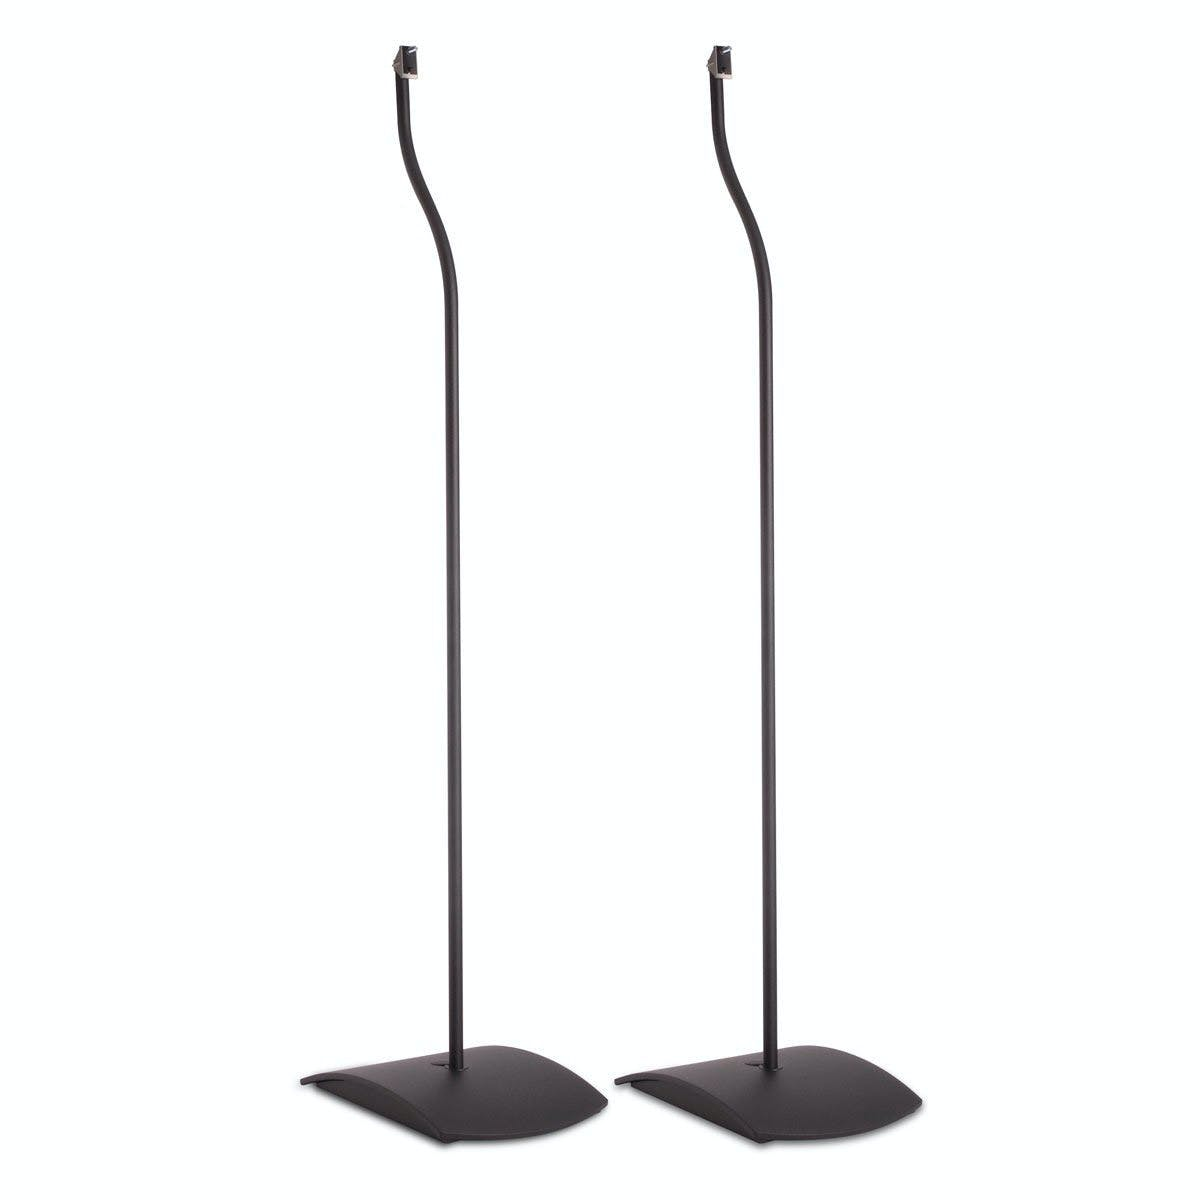 bose ufs 20 ii bl ufs 20 series ii universal floor stands. Black Bedroom Furniture Sets. Home Design Ideas